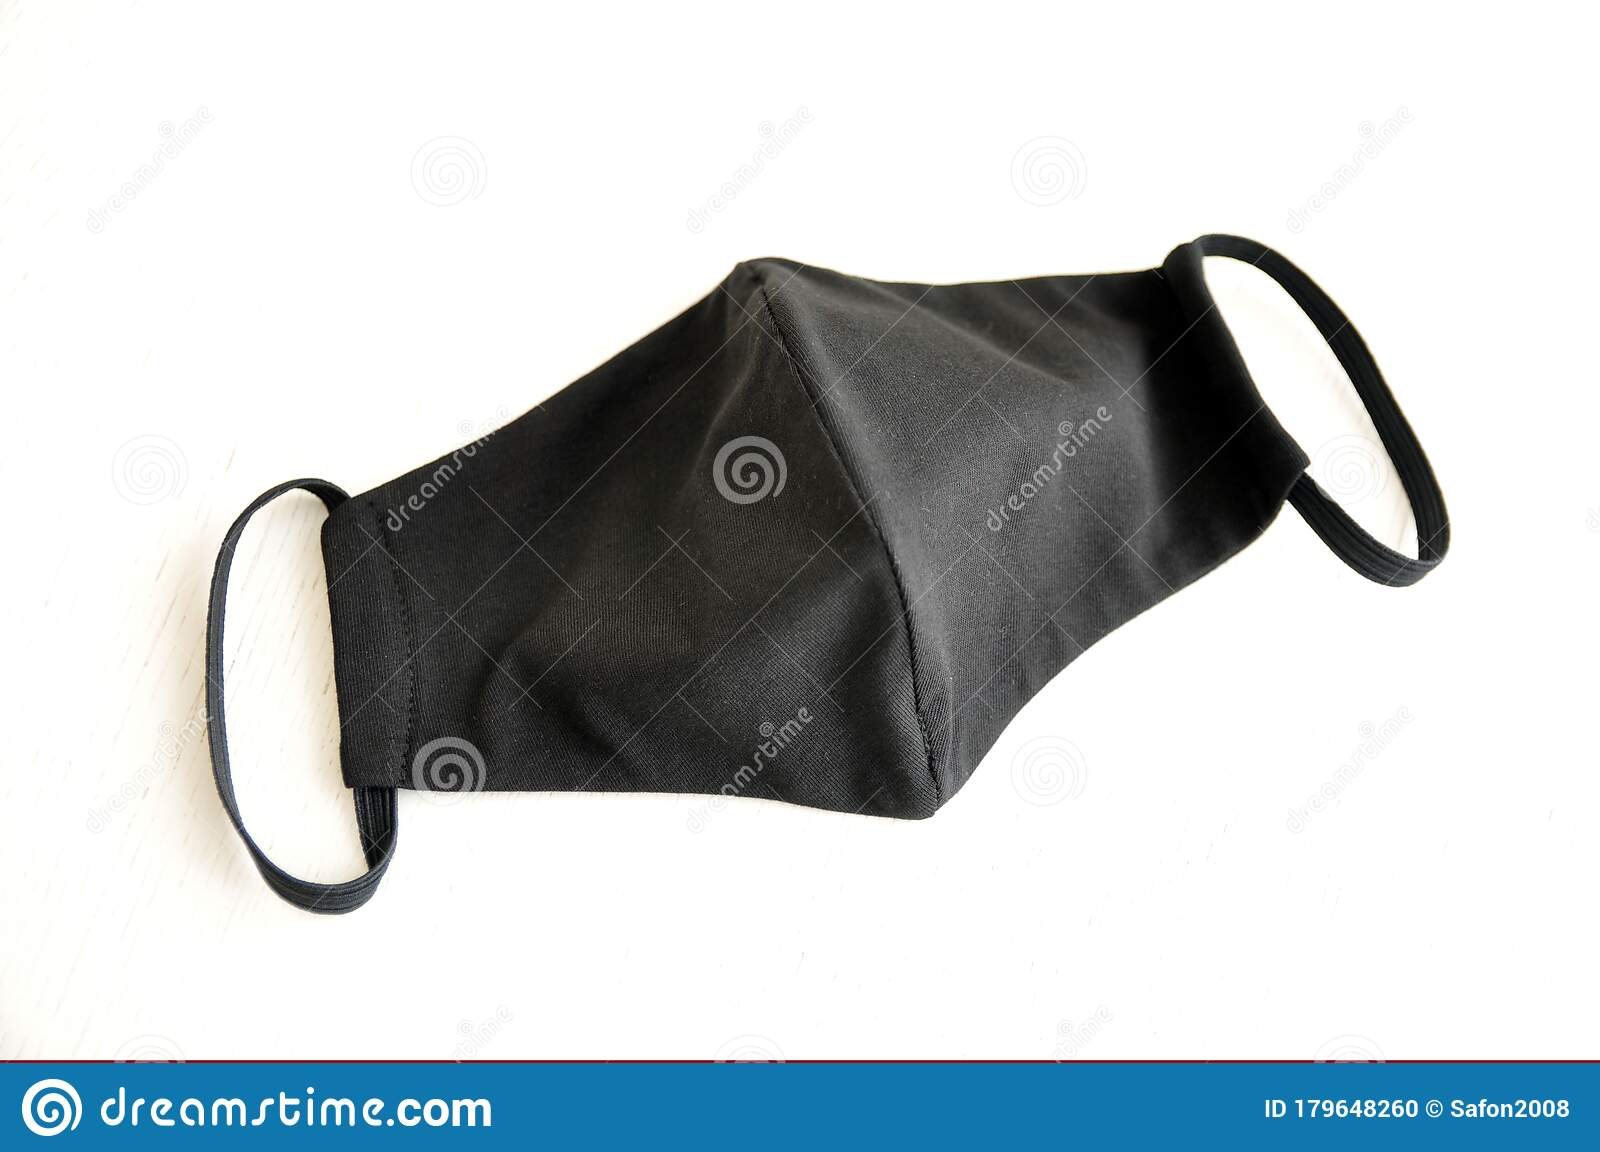 Reusable Respiratory Mask Made Of Black Fabric With Elastic Bands